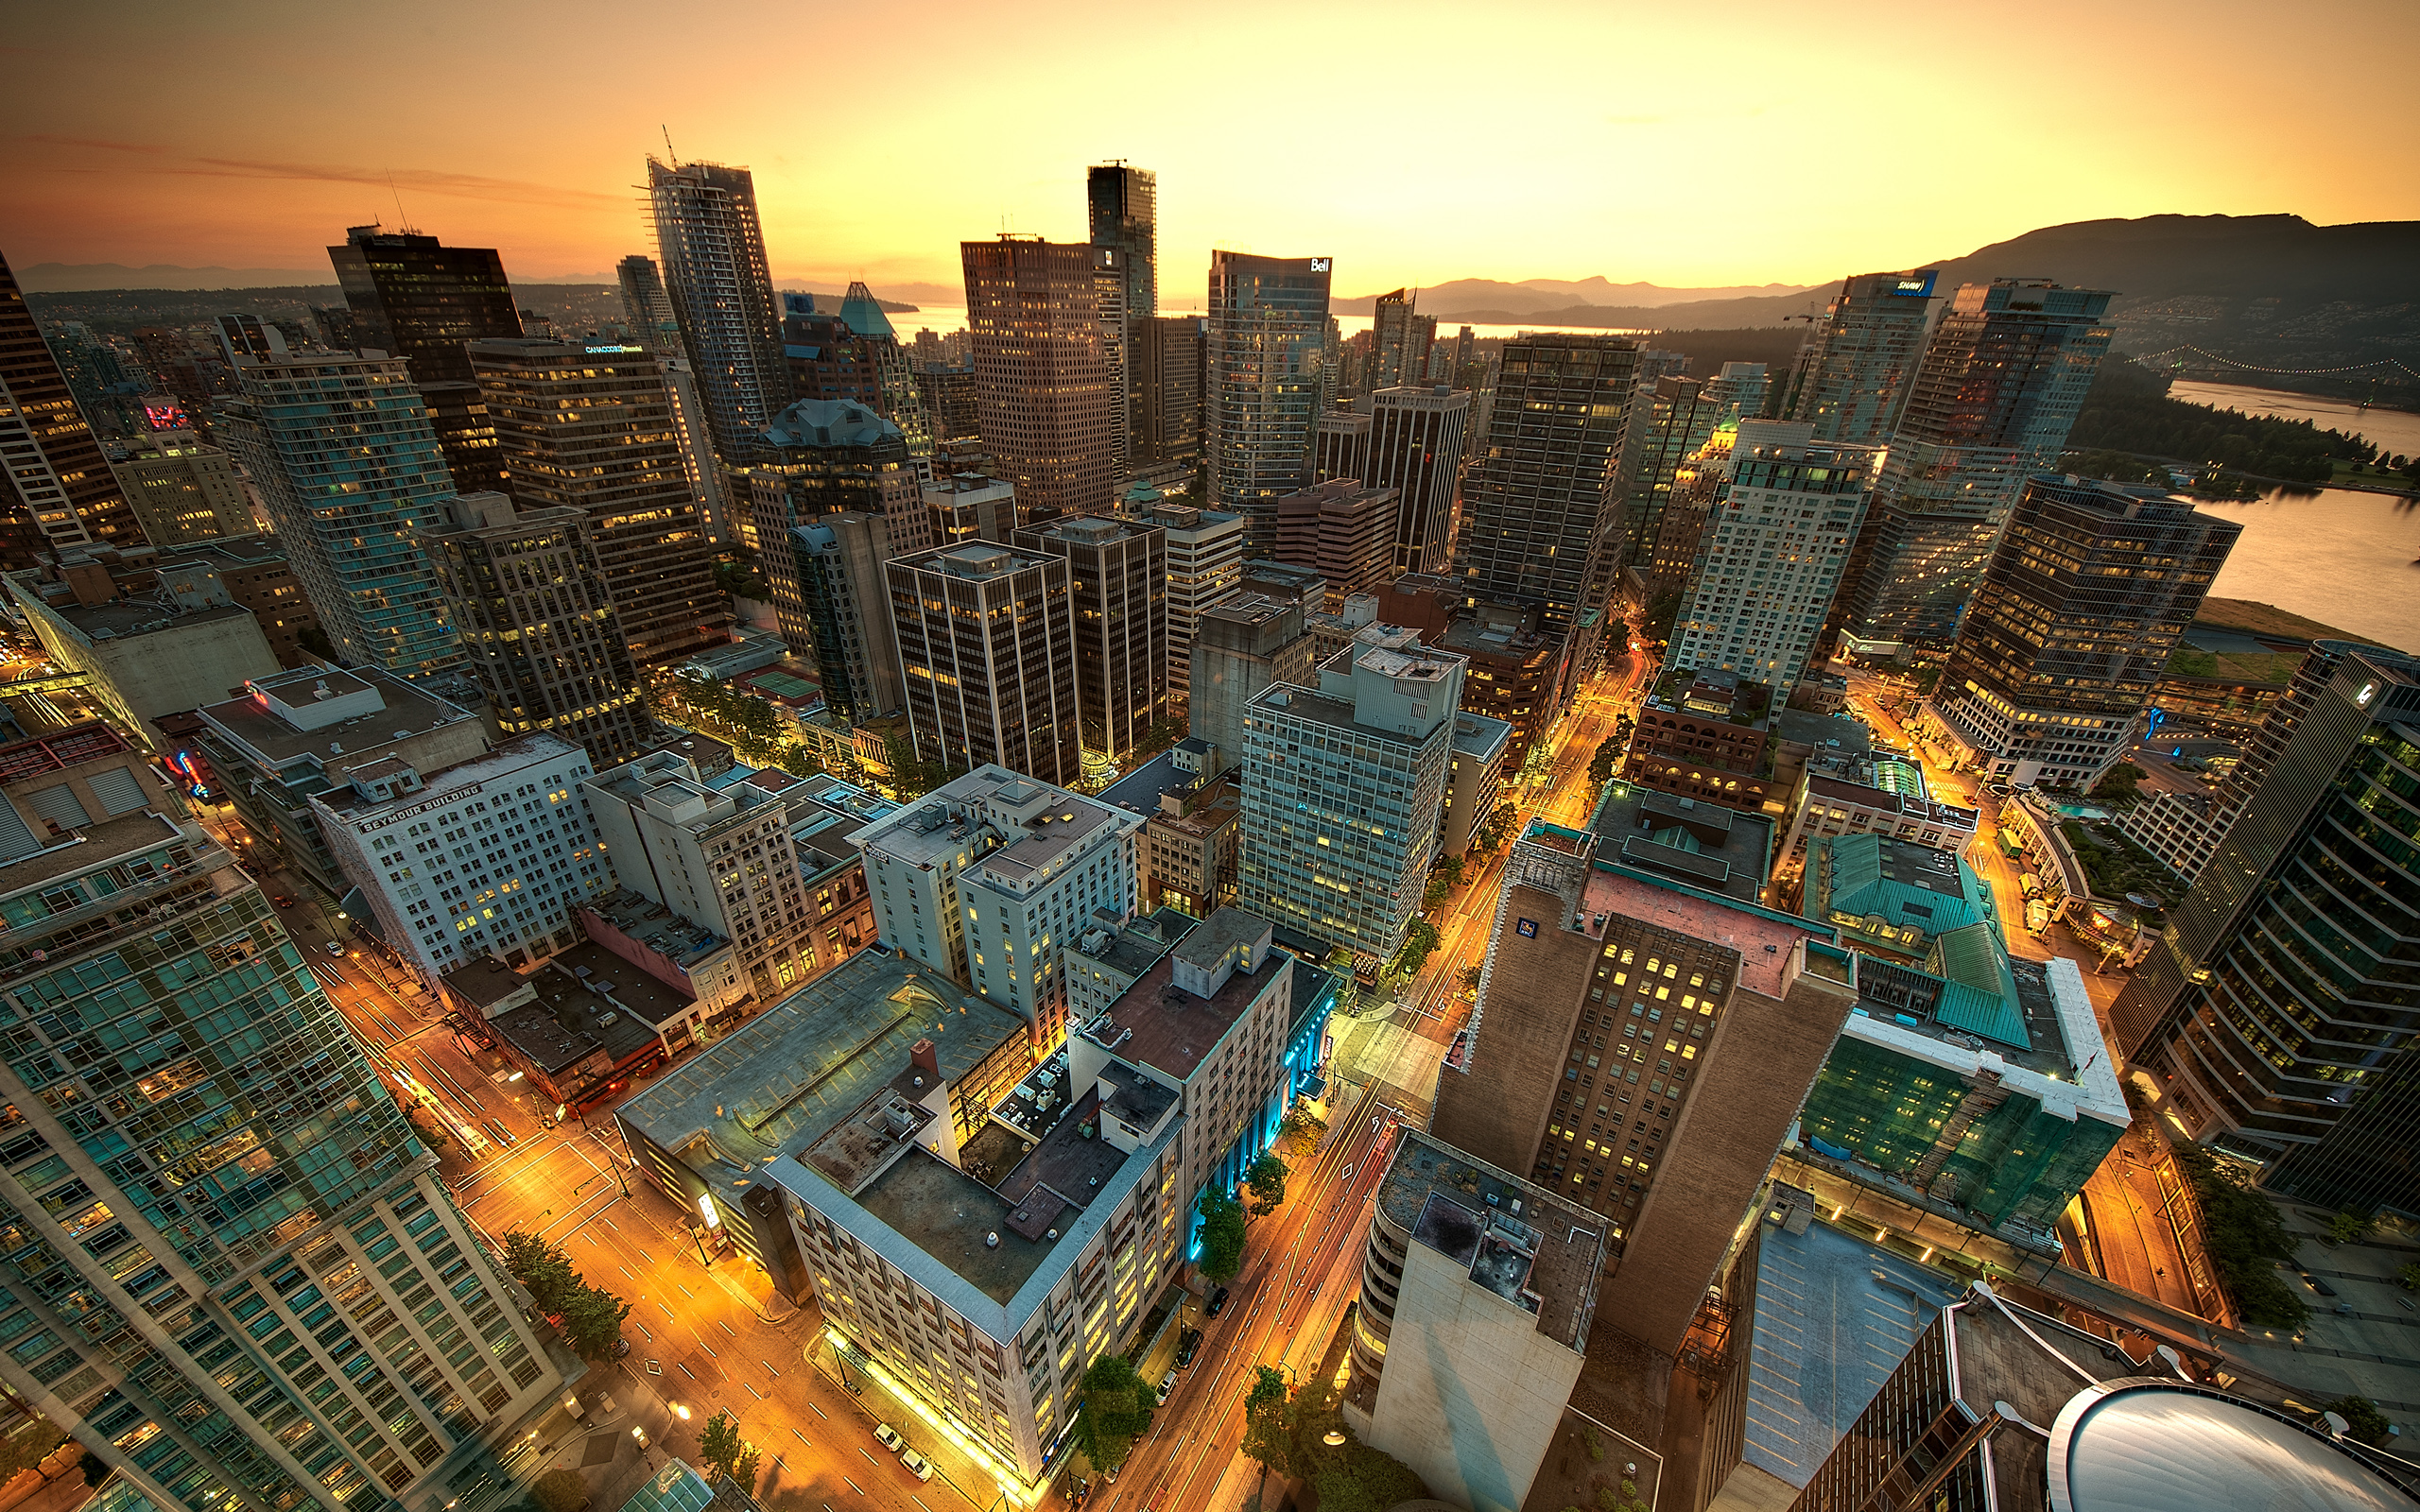 Vancouver 4k Wallpapers For Your Desktop Or Mobile Screen